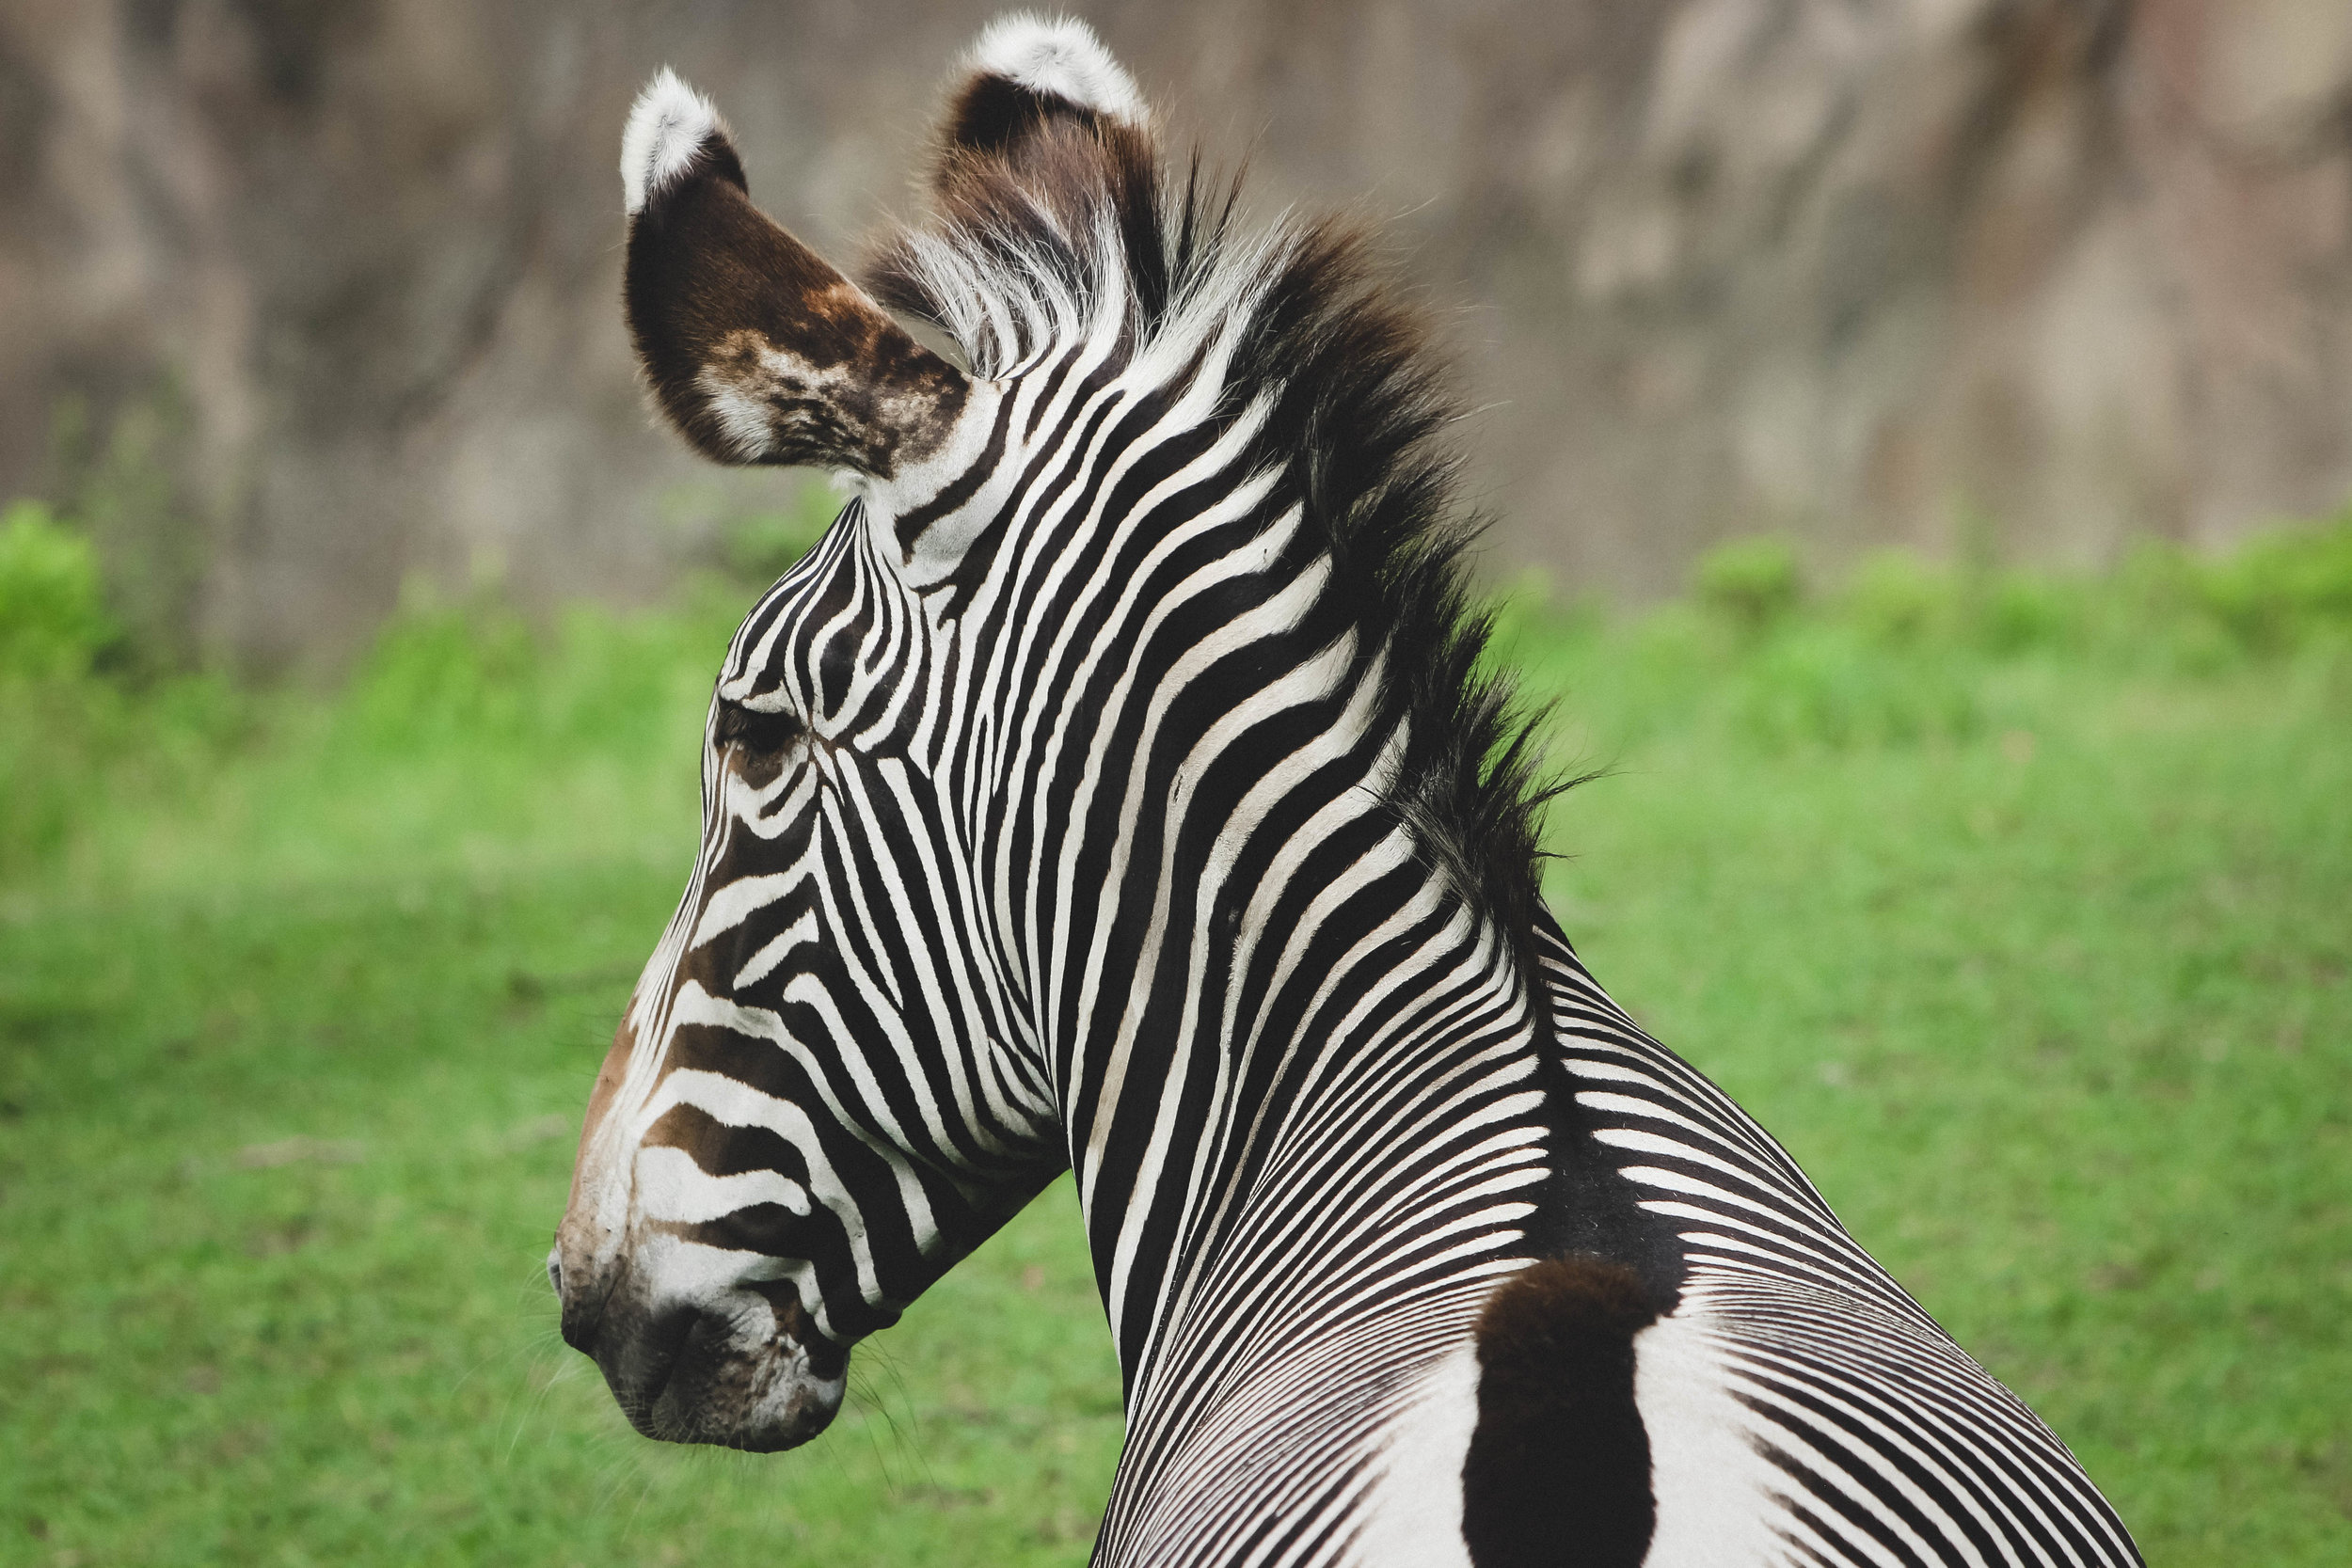 Zebra at the Detroit Zoo | Image by Taylor Ifland Photography